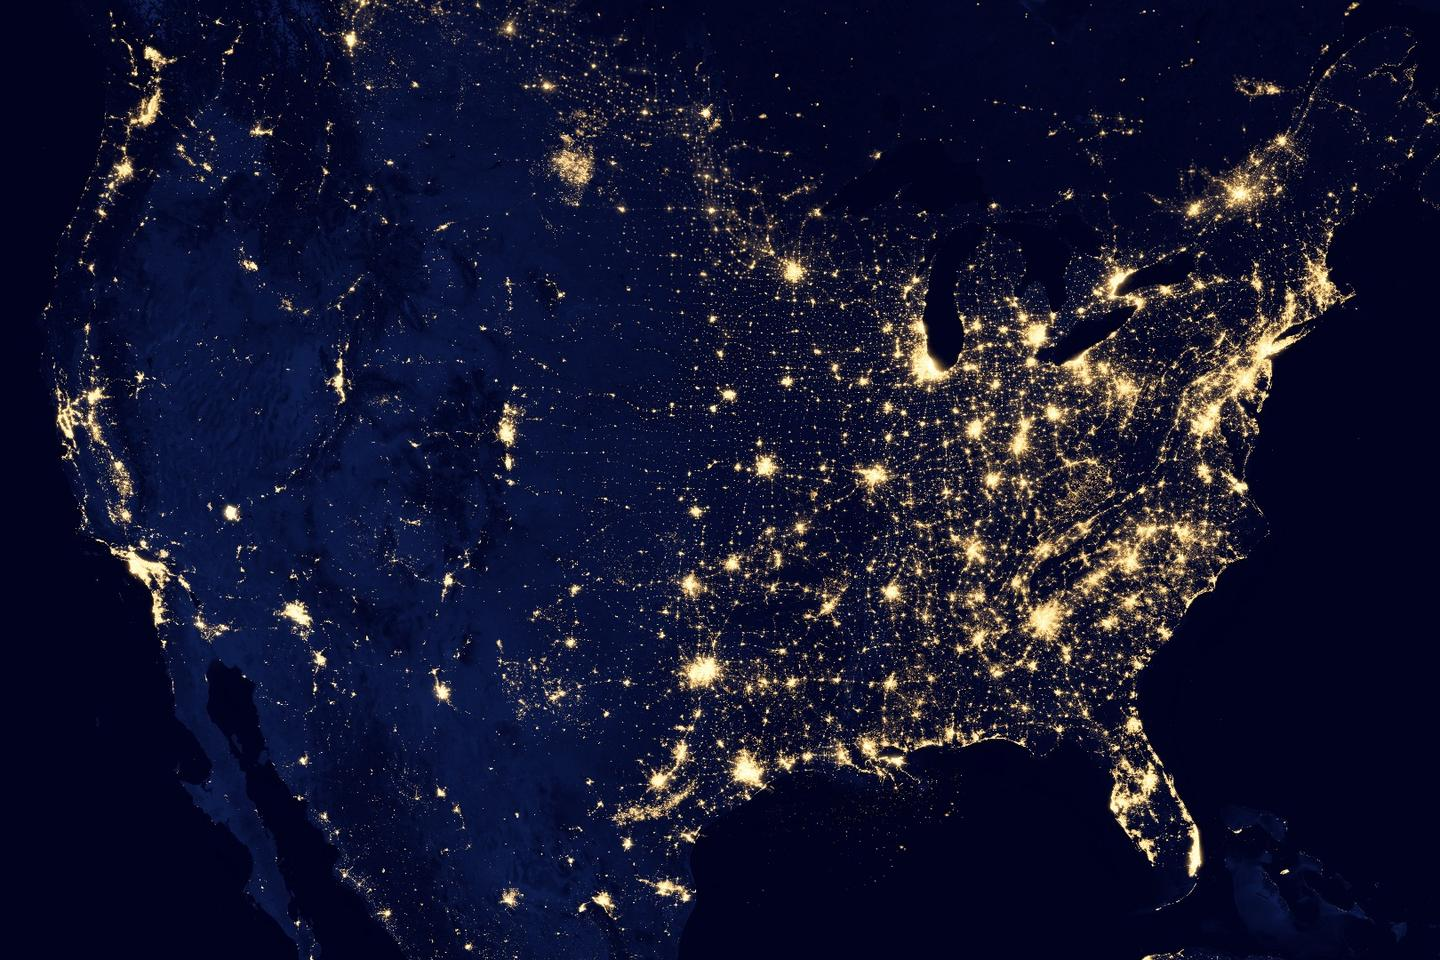 A composite image of the continental United States, as seen by the polar-orbiting Suomi NPP satellite in 2012